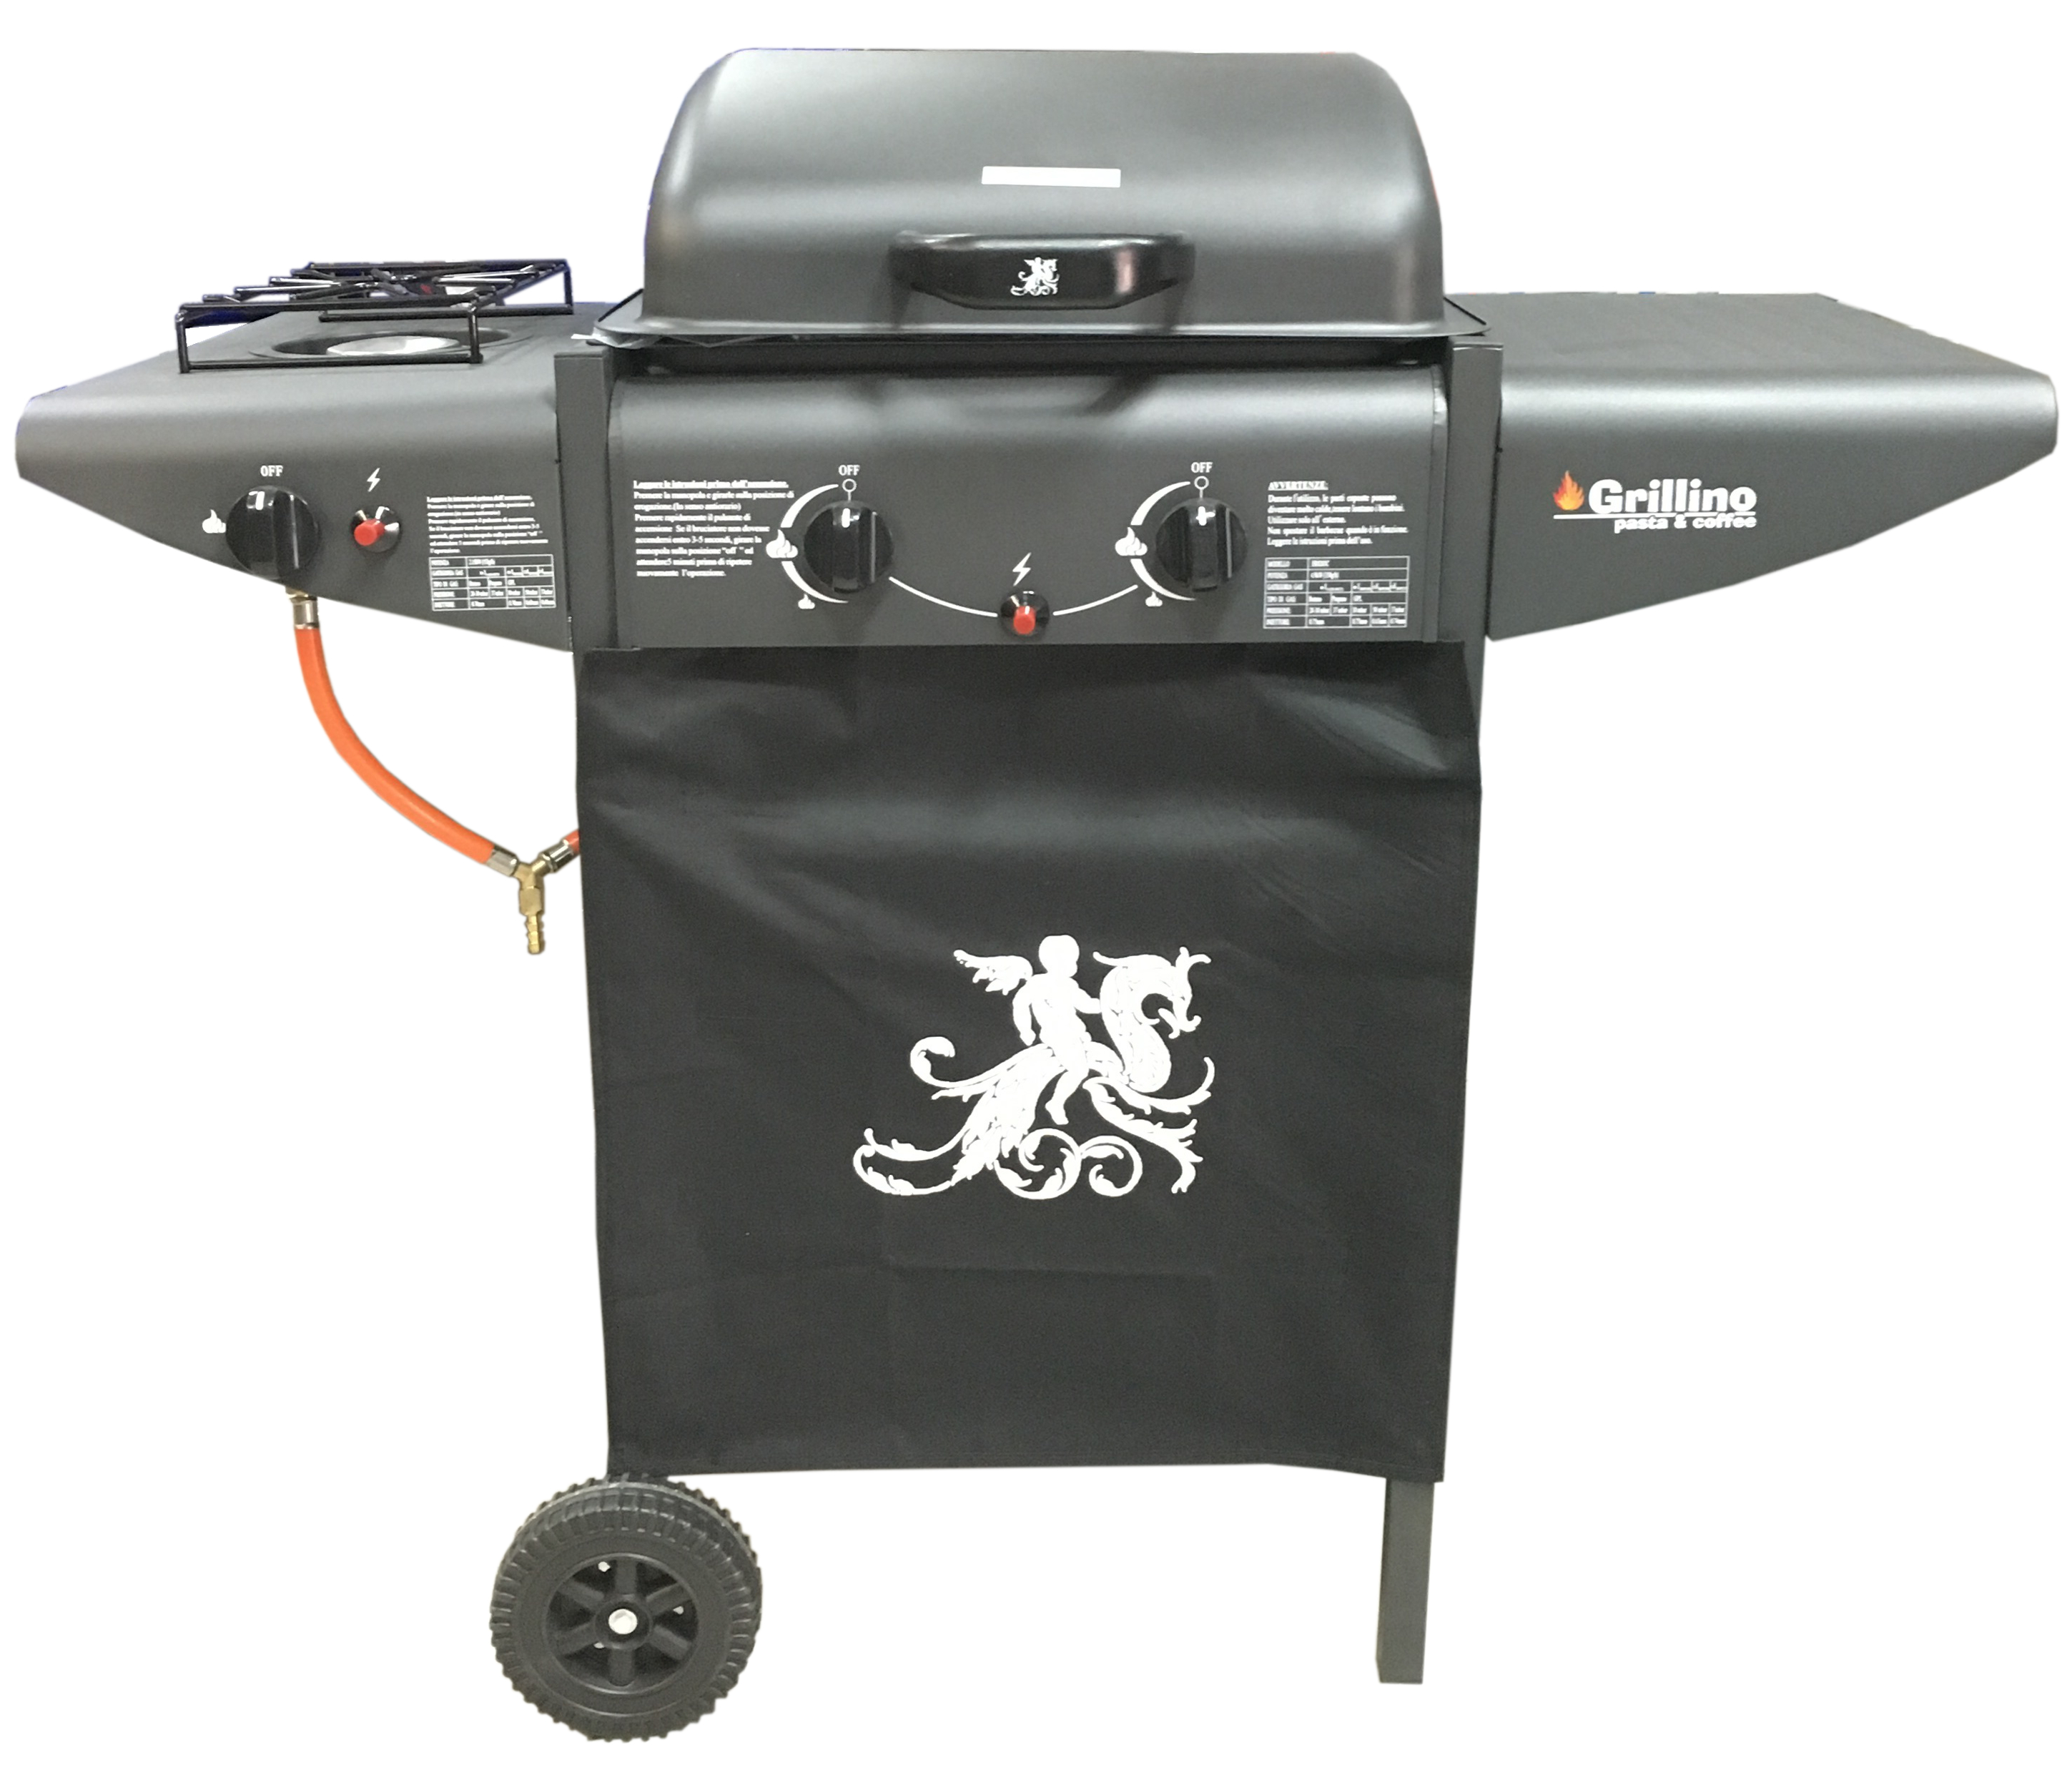 BARBECUE GAS GRILLINO CON 1 FORNELLO LATERALEED 1 PIANO LATERALE